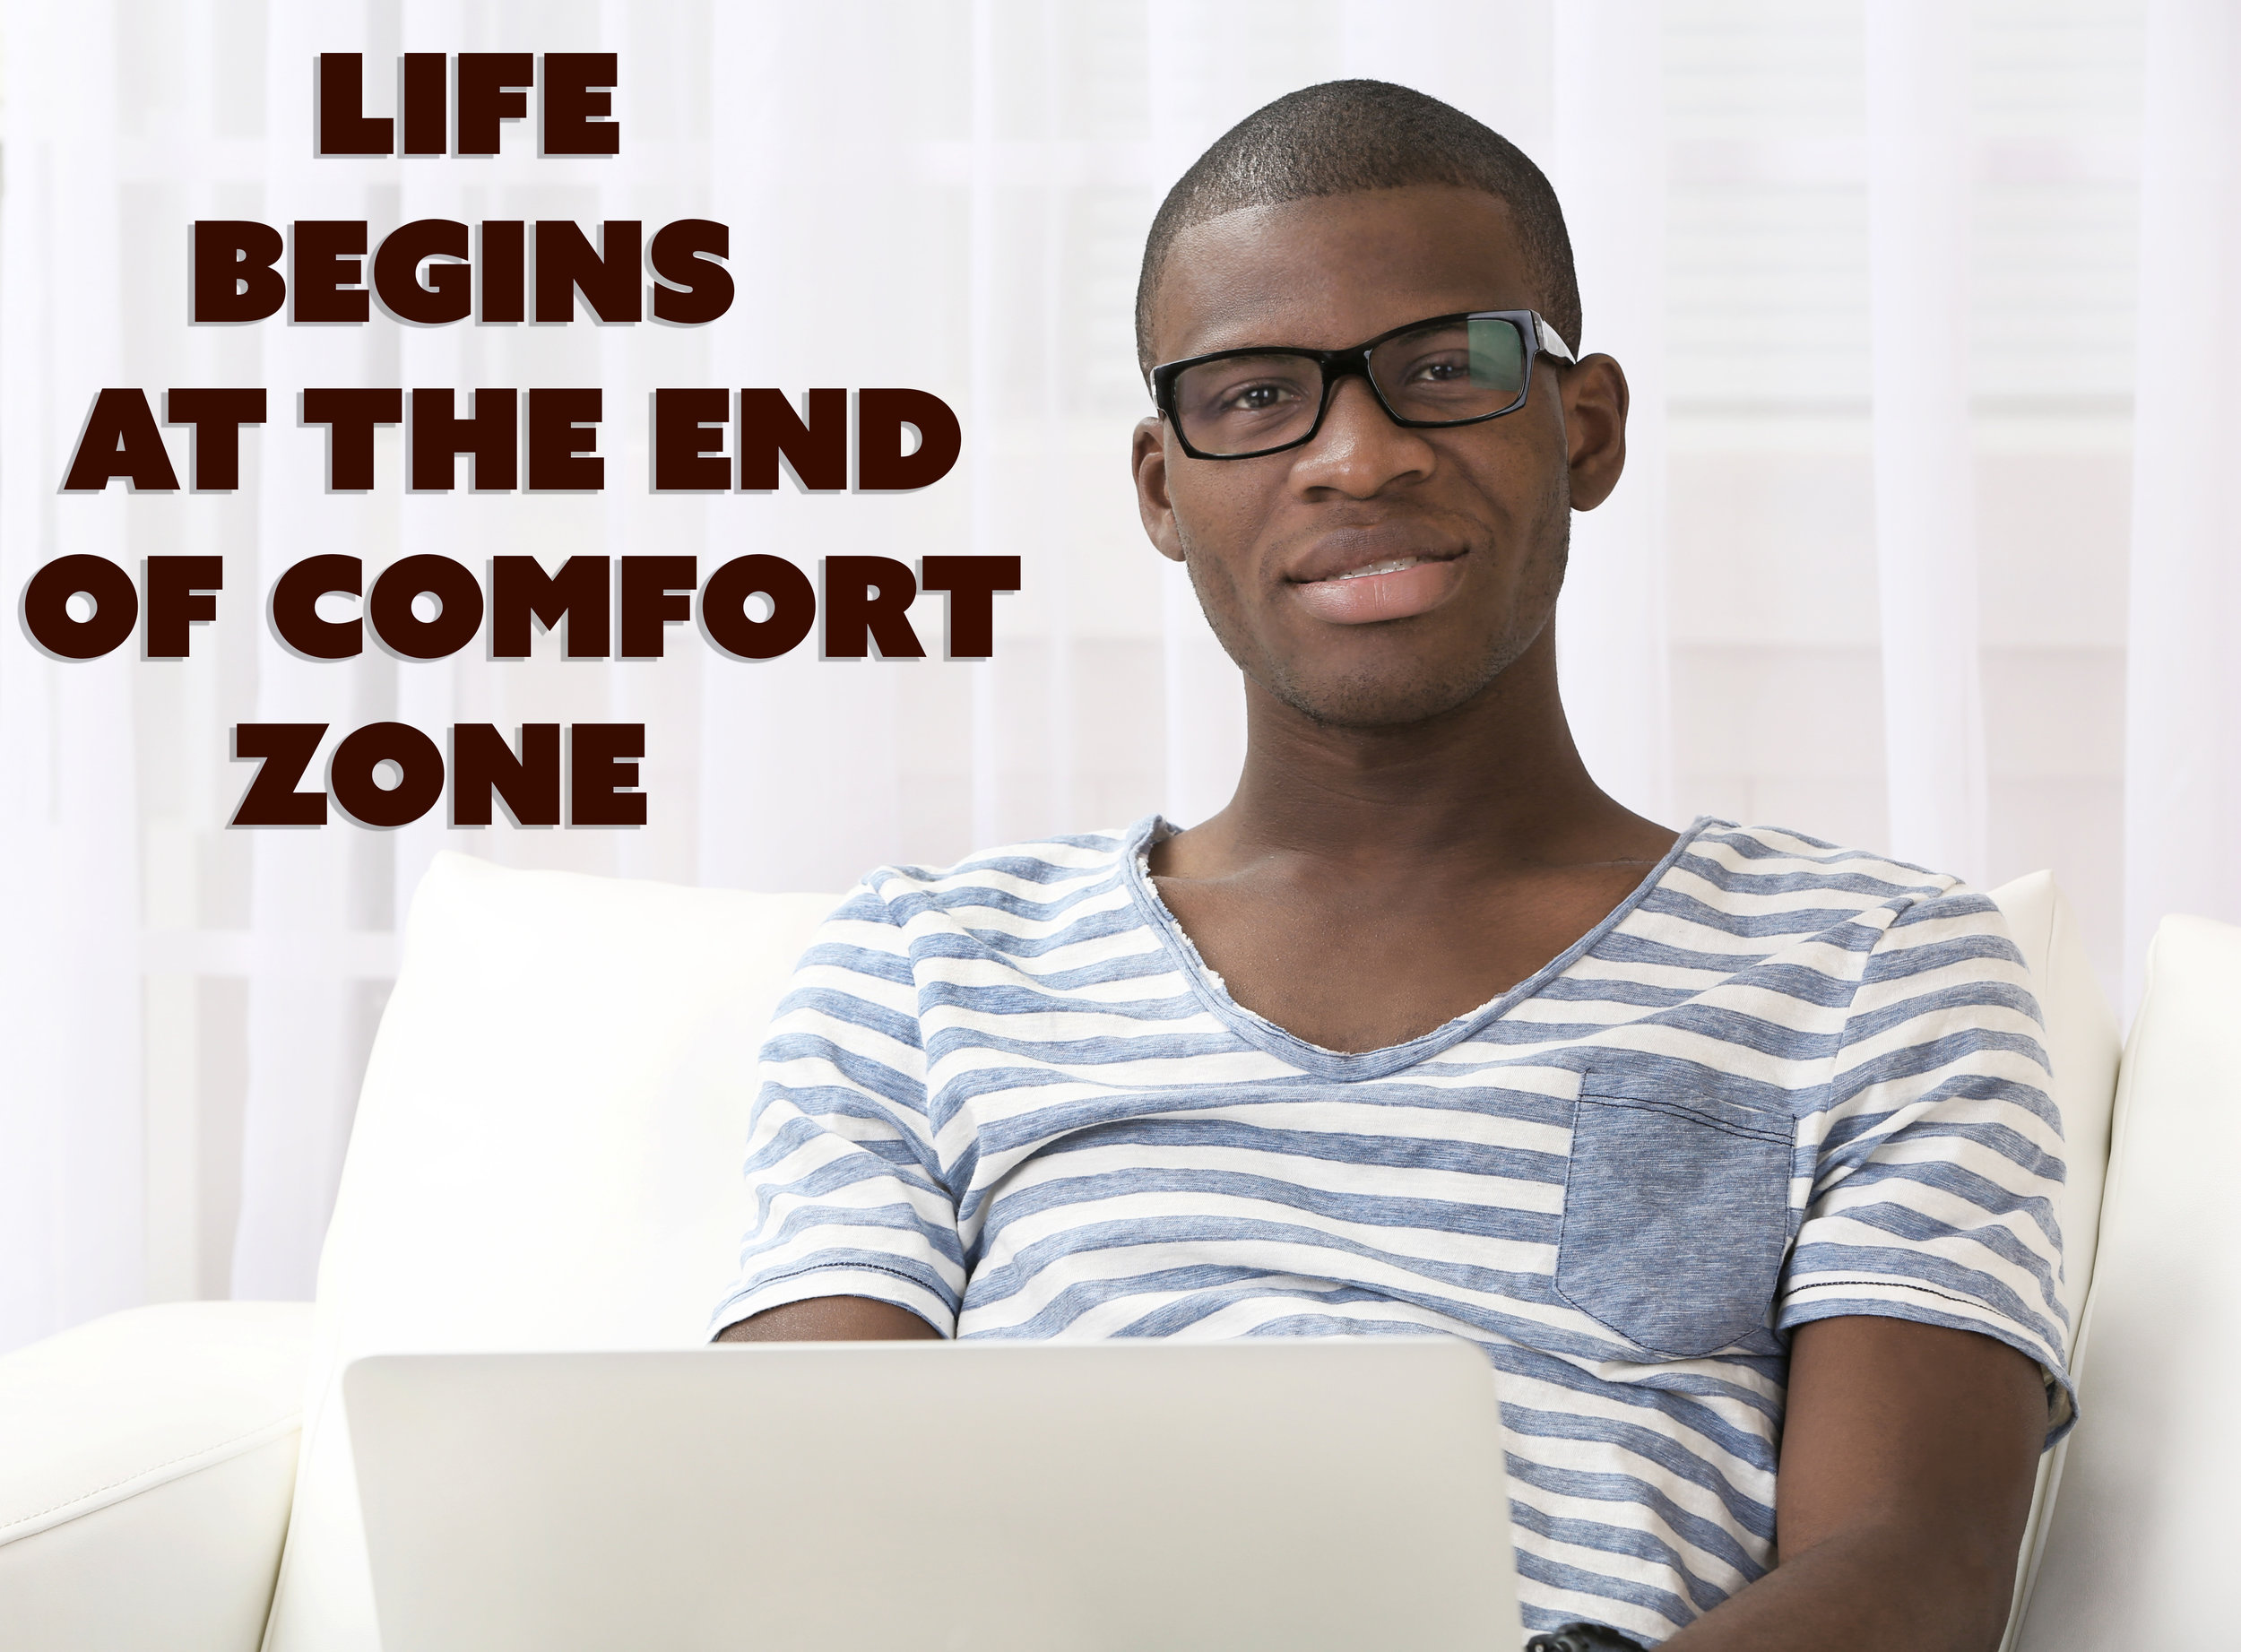 life begins at comfort zone man.jpeg